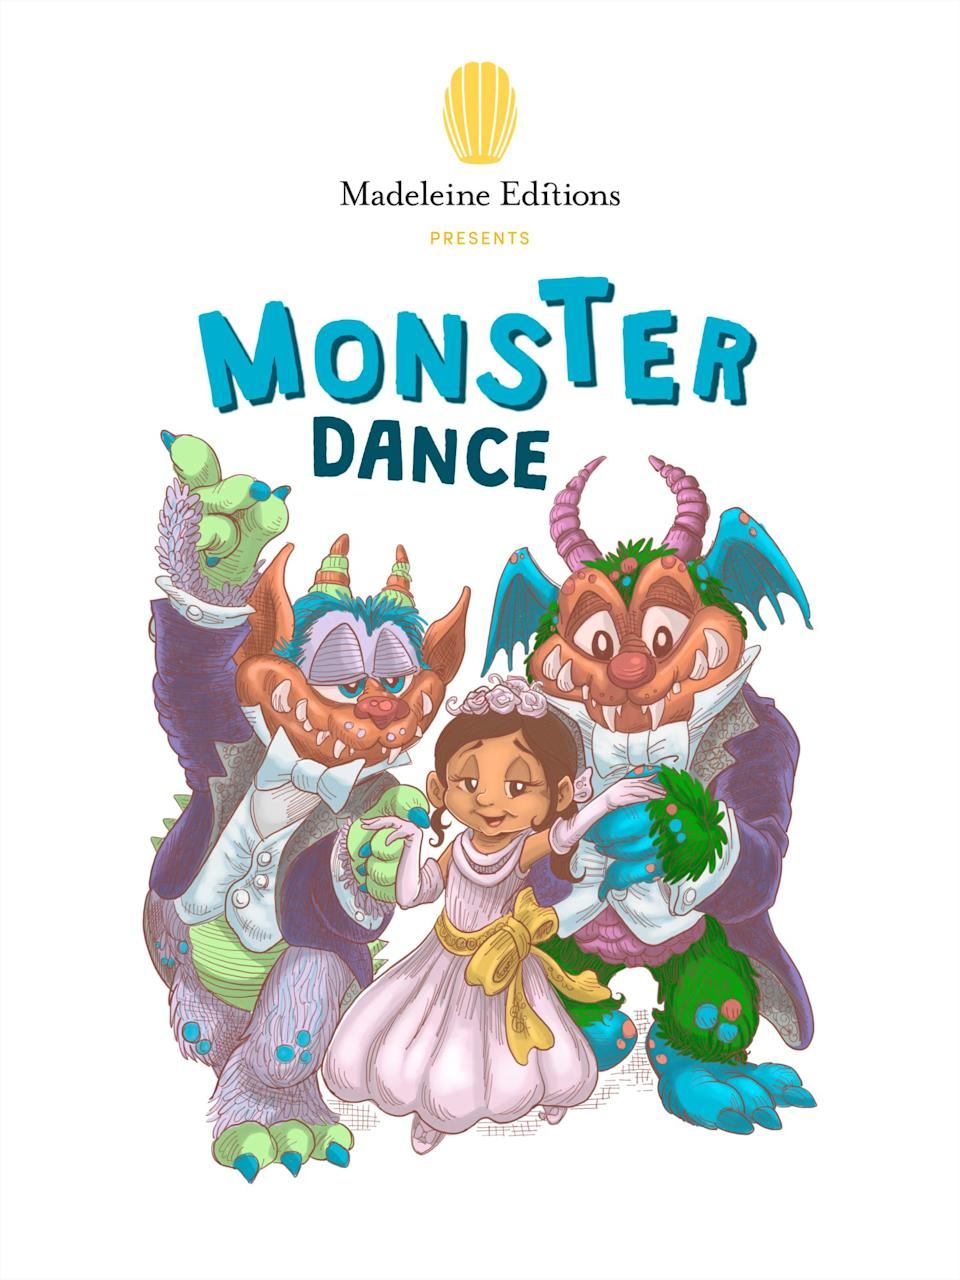 """This upcoming multimedia book aims to keep young children comforted, empowered and informed during the pandemic. <i>(Available <a href=""""https://madeleineeditions.com/stories/monster-dance/"""" target=""""_blank"""" rel=""""noopener noreferrer"""">here</a>.)</i>"""